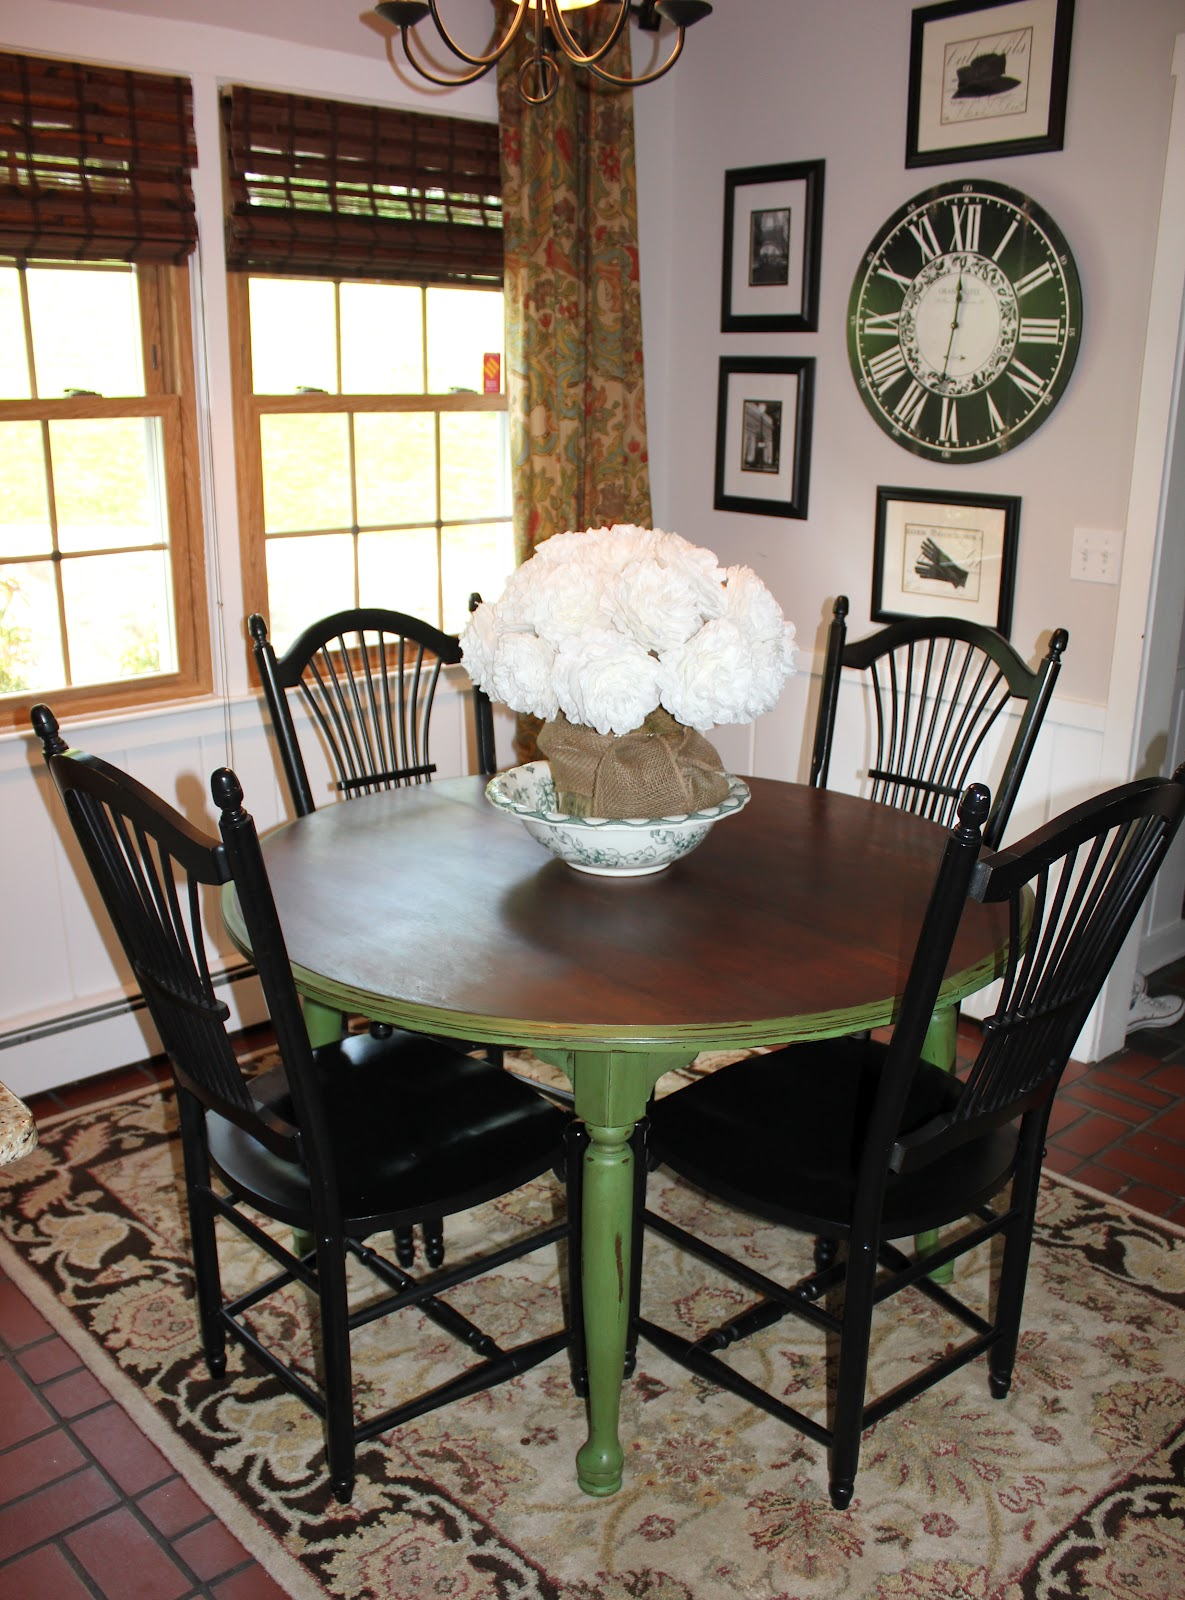 My passion for decor green with envy the kitchen table for Painted kitchen chairs